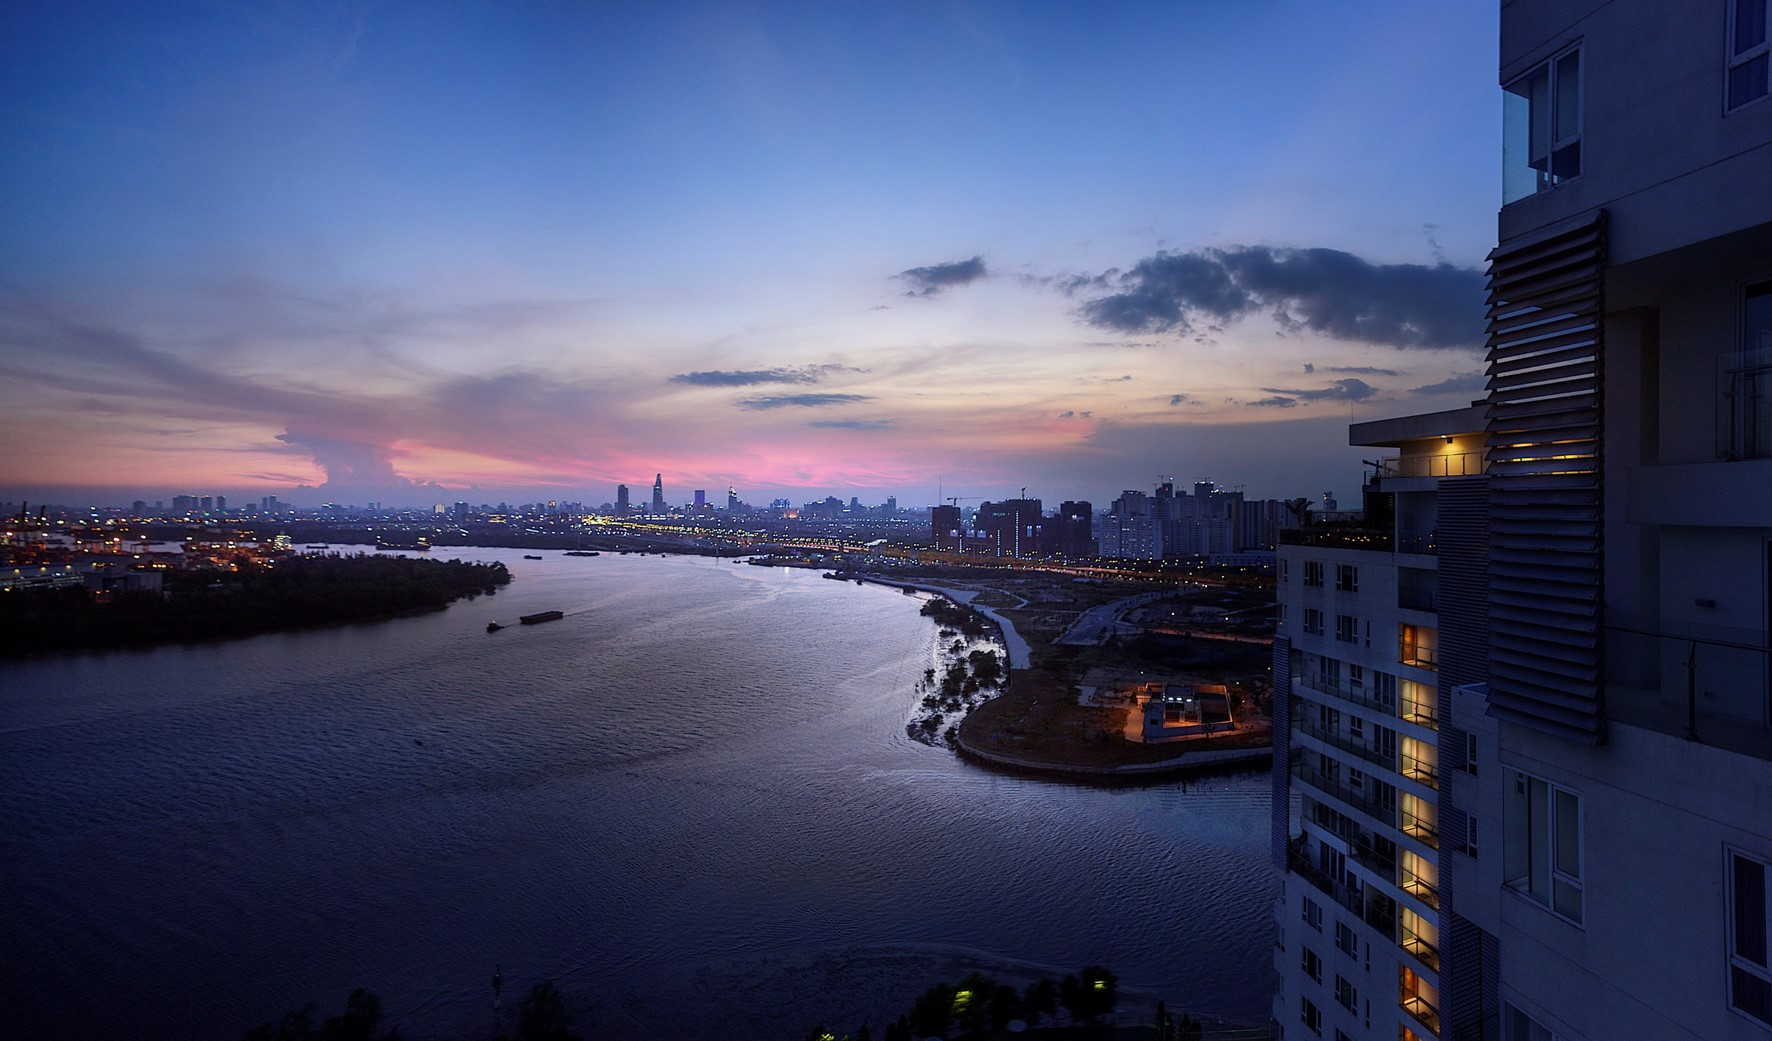 BREATHTAKING 360-DEGREE VIEWS OVER THE SAIGON RIVER